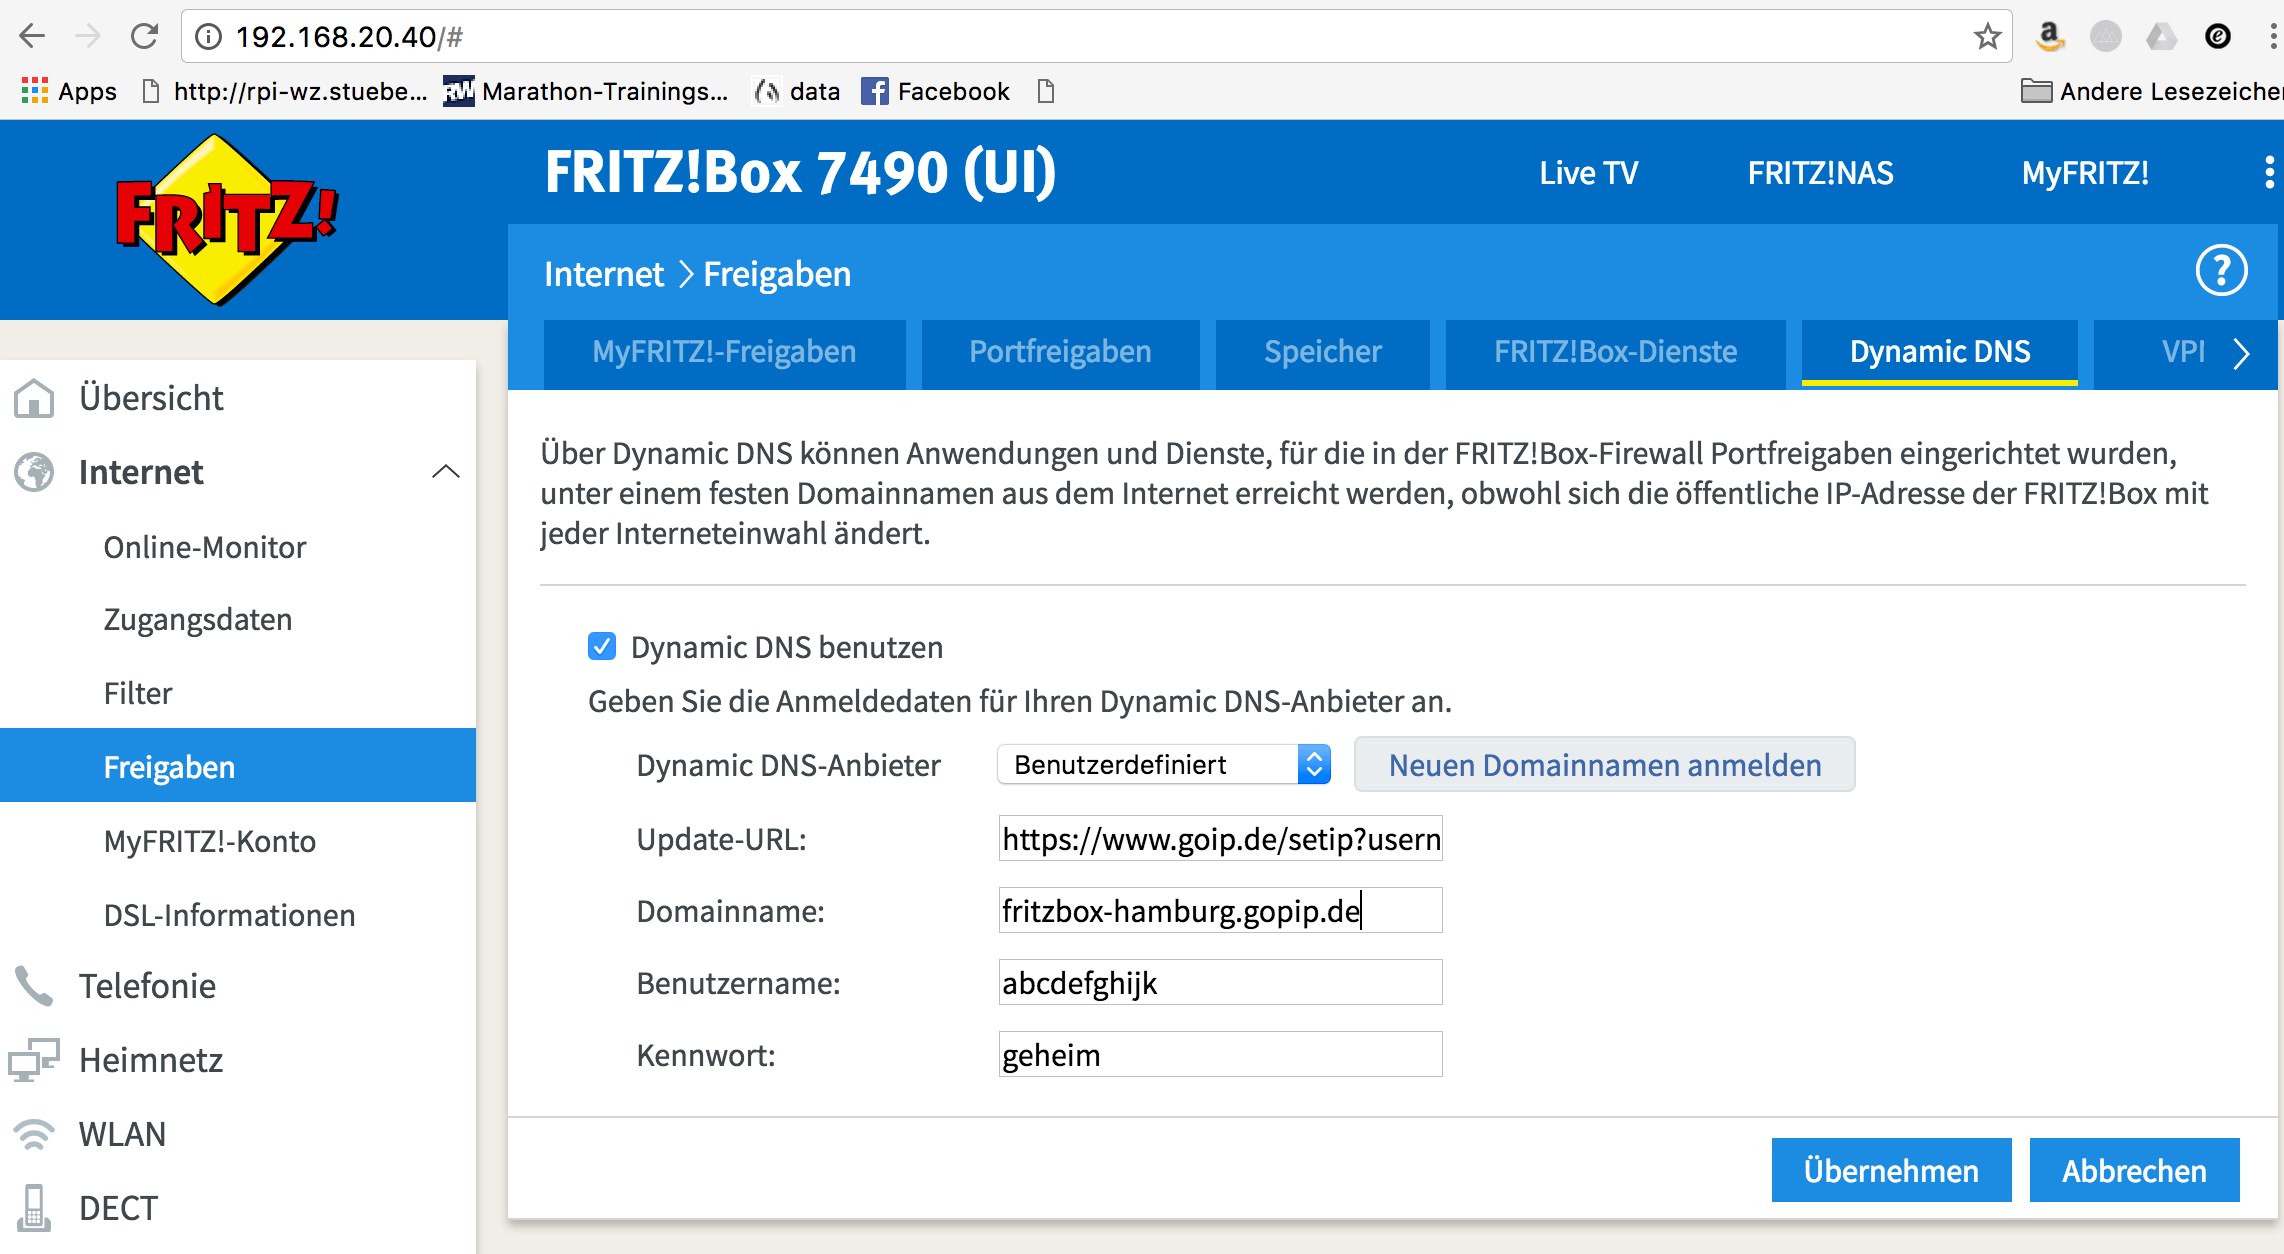 Synology Dyndns Fritzbox